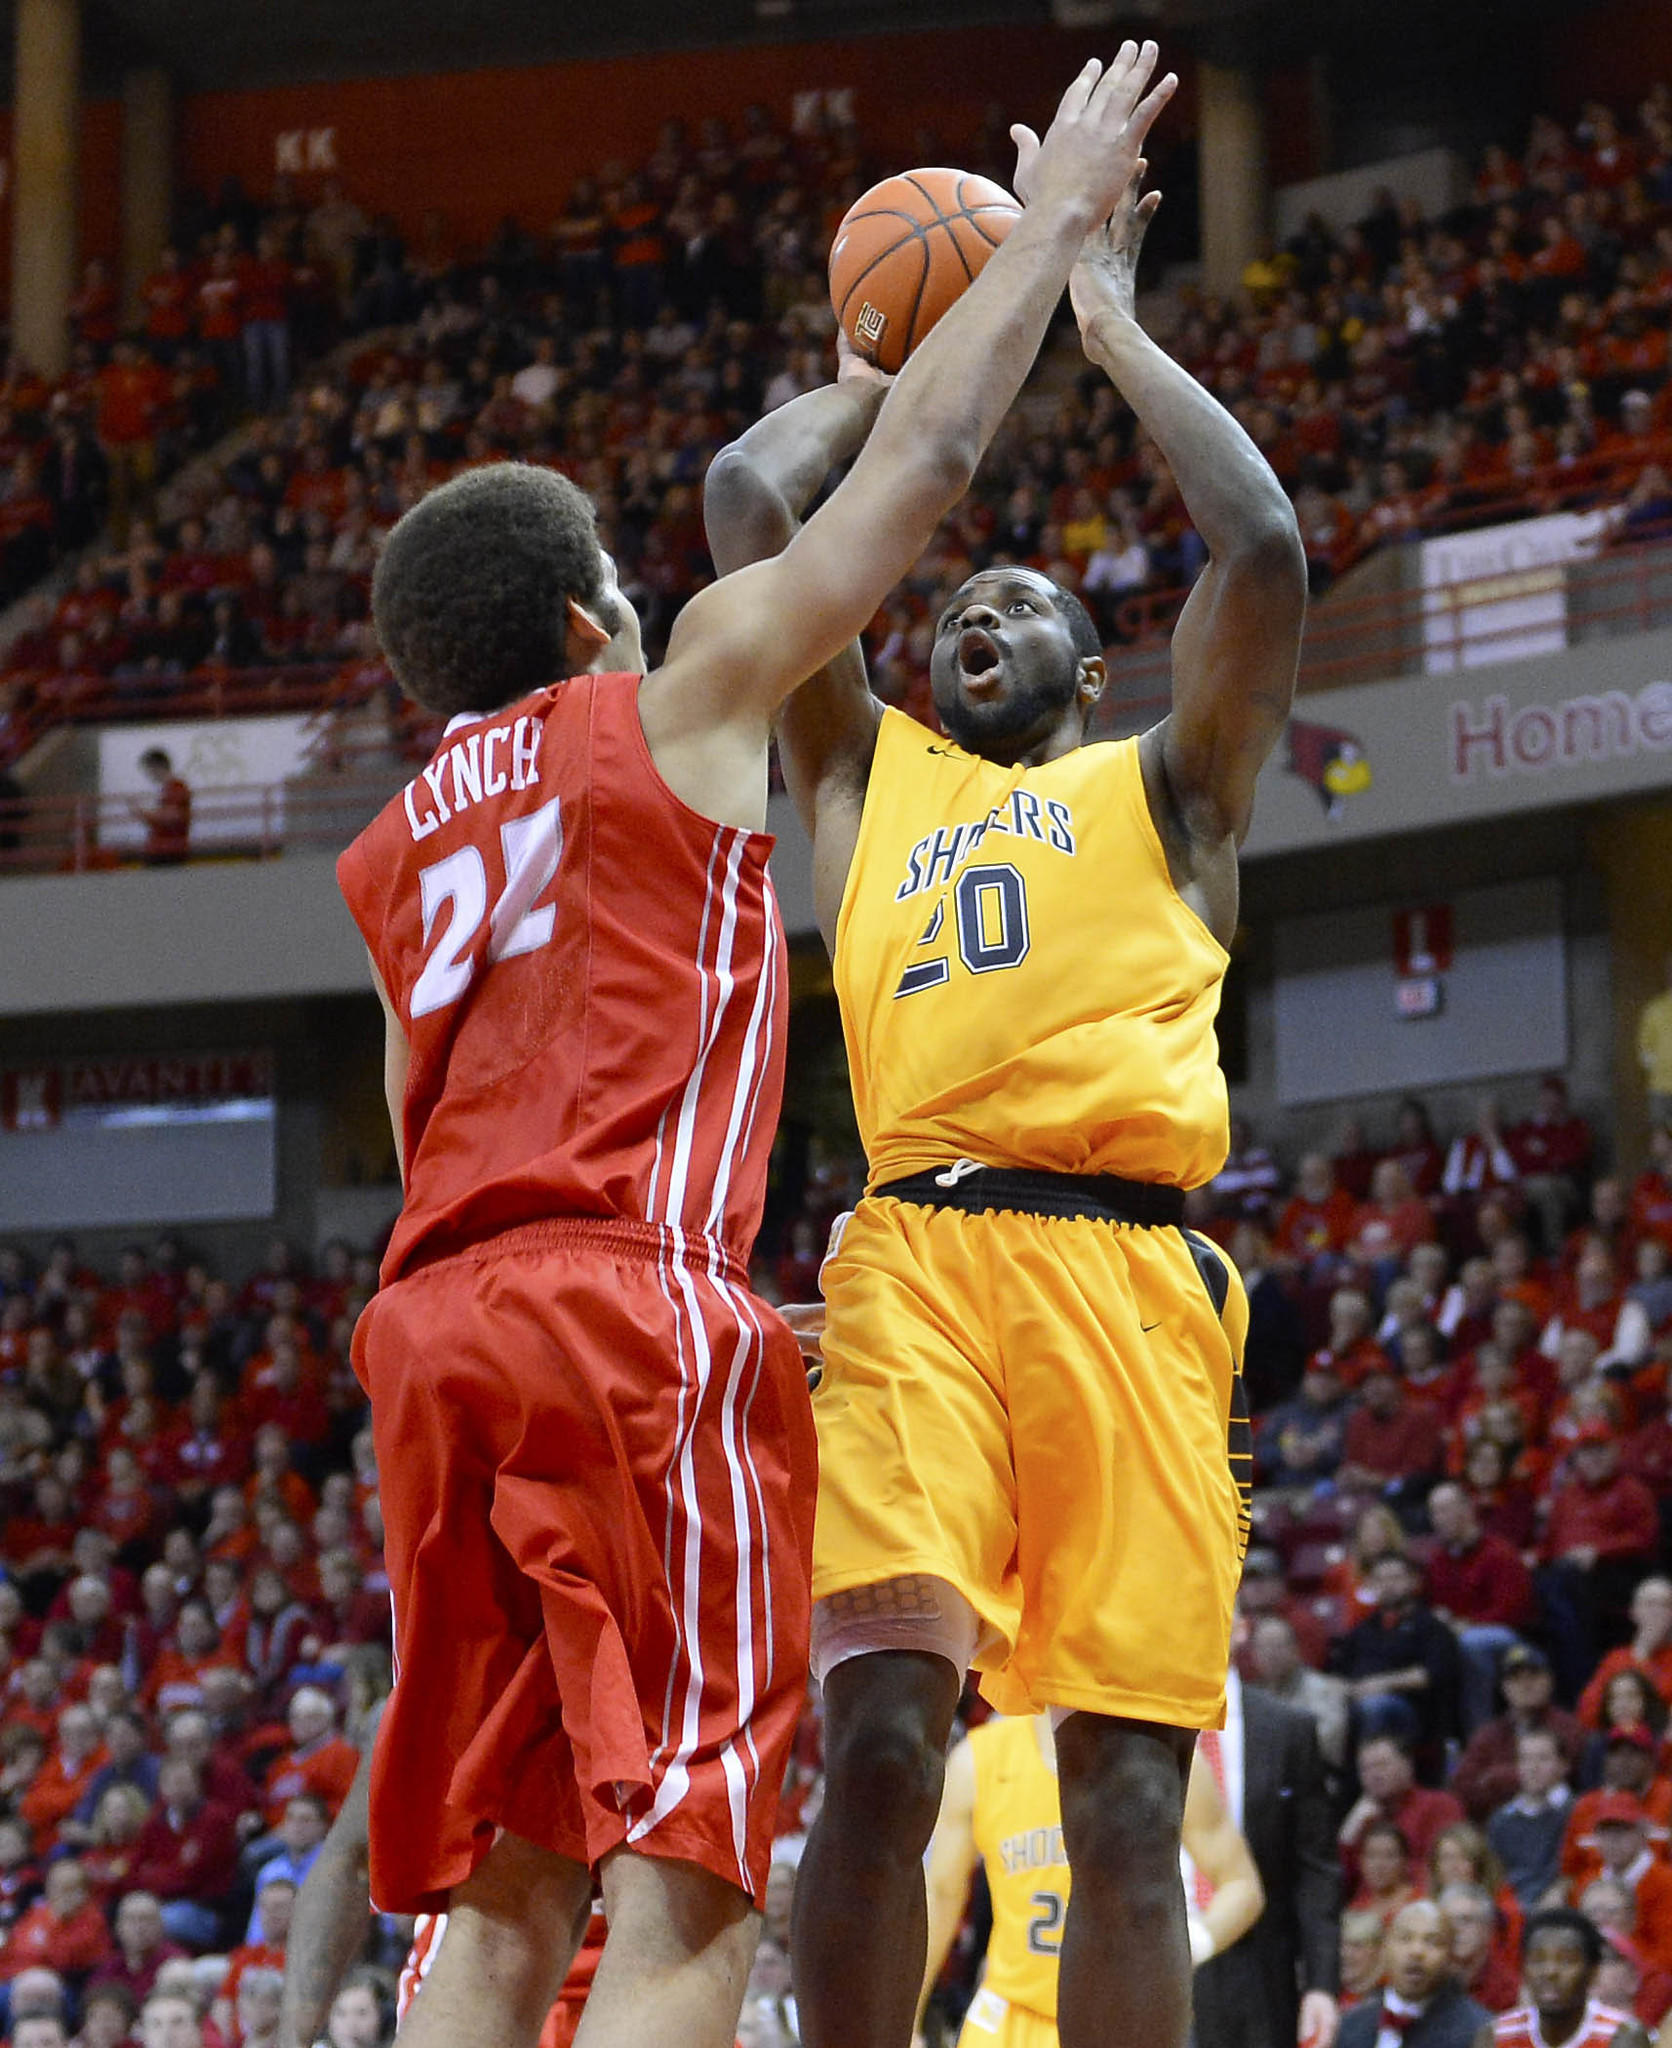 Wichita State's Kadeem Coleby shoots the ball against Illinois State's Reggie Lynch during the first half at Redbird Arena.